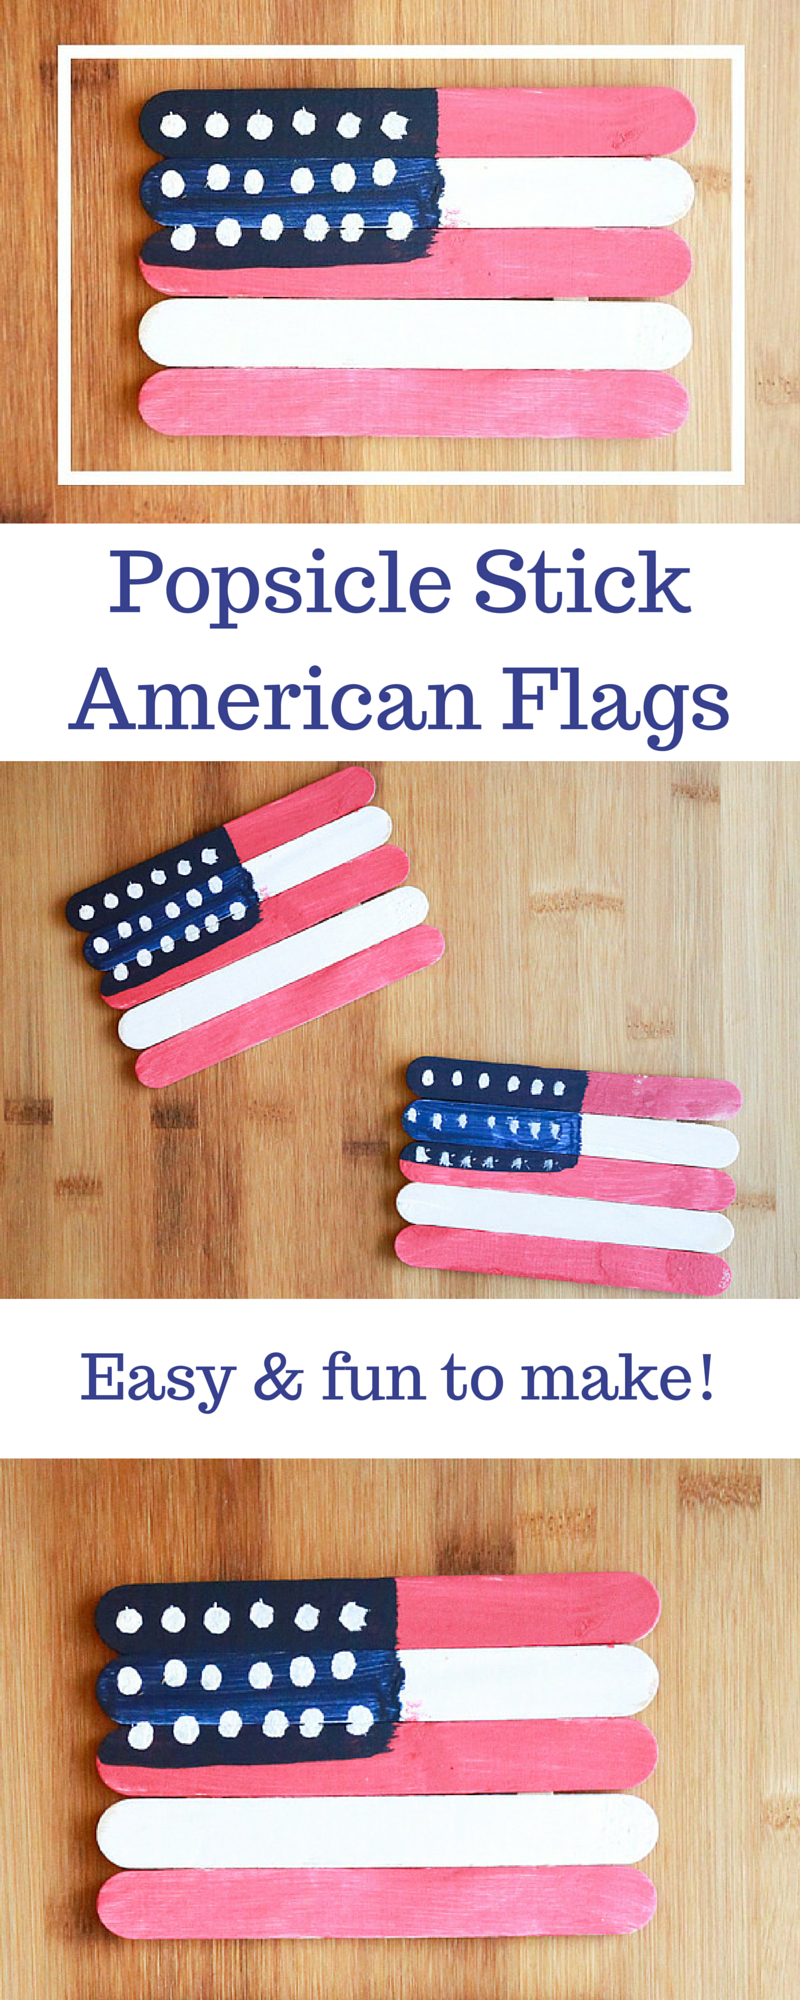 Spend some time indoors out of the summer heat making these super easy and fun Popsicle Stick American Flags! They make festive decor for the 4th of July.